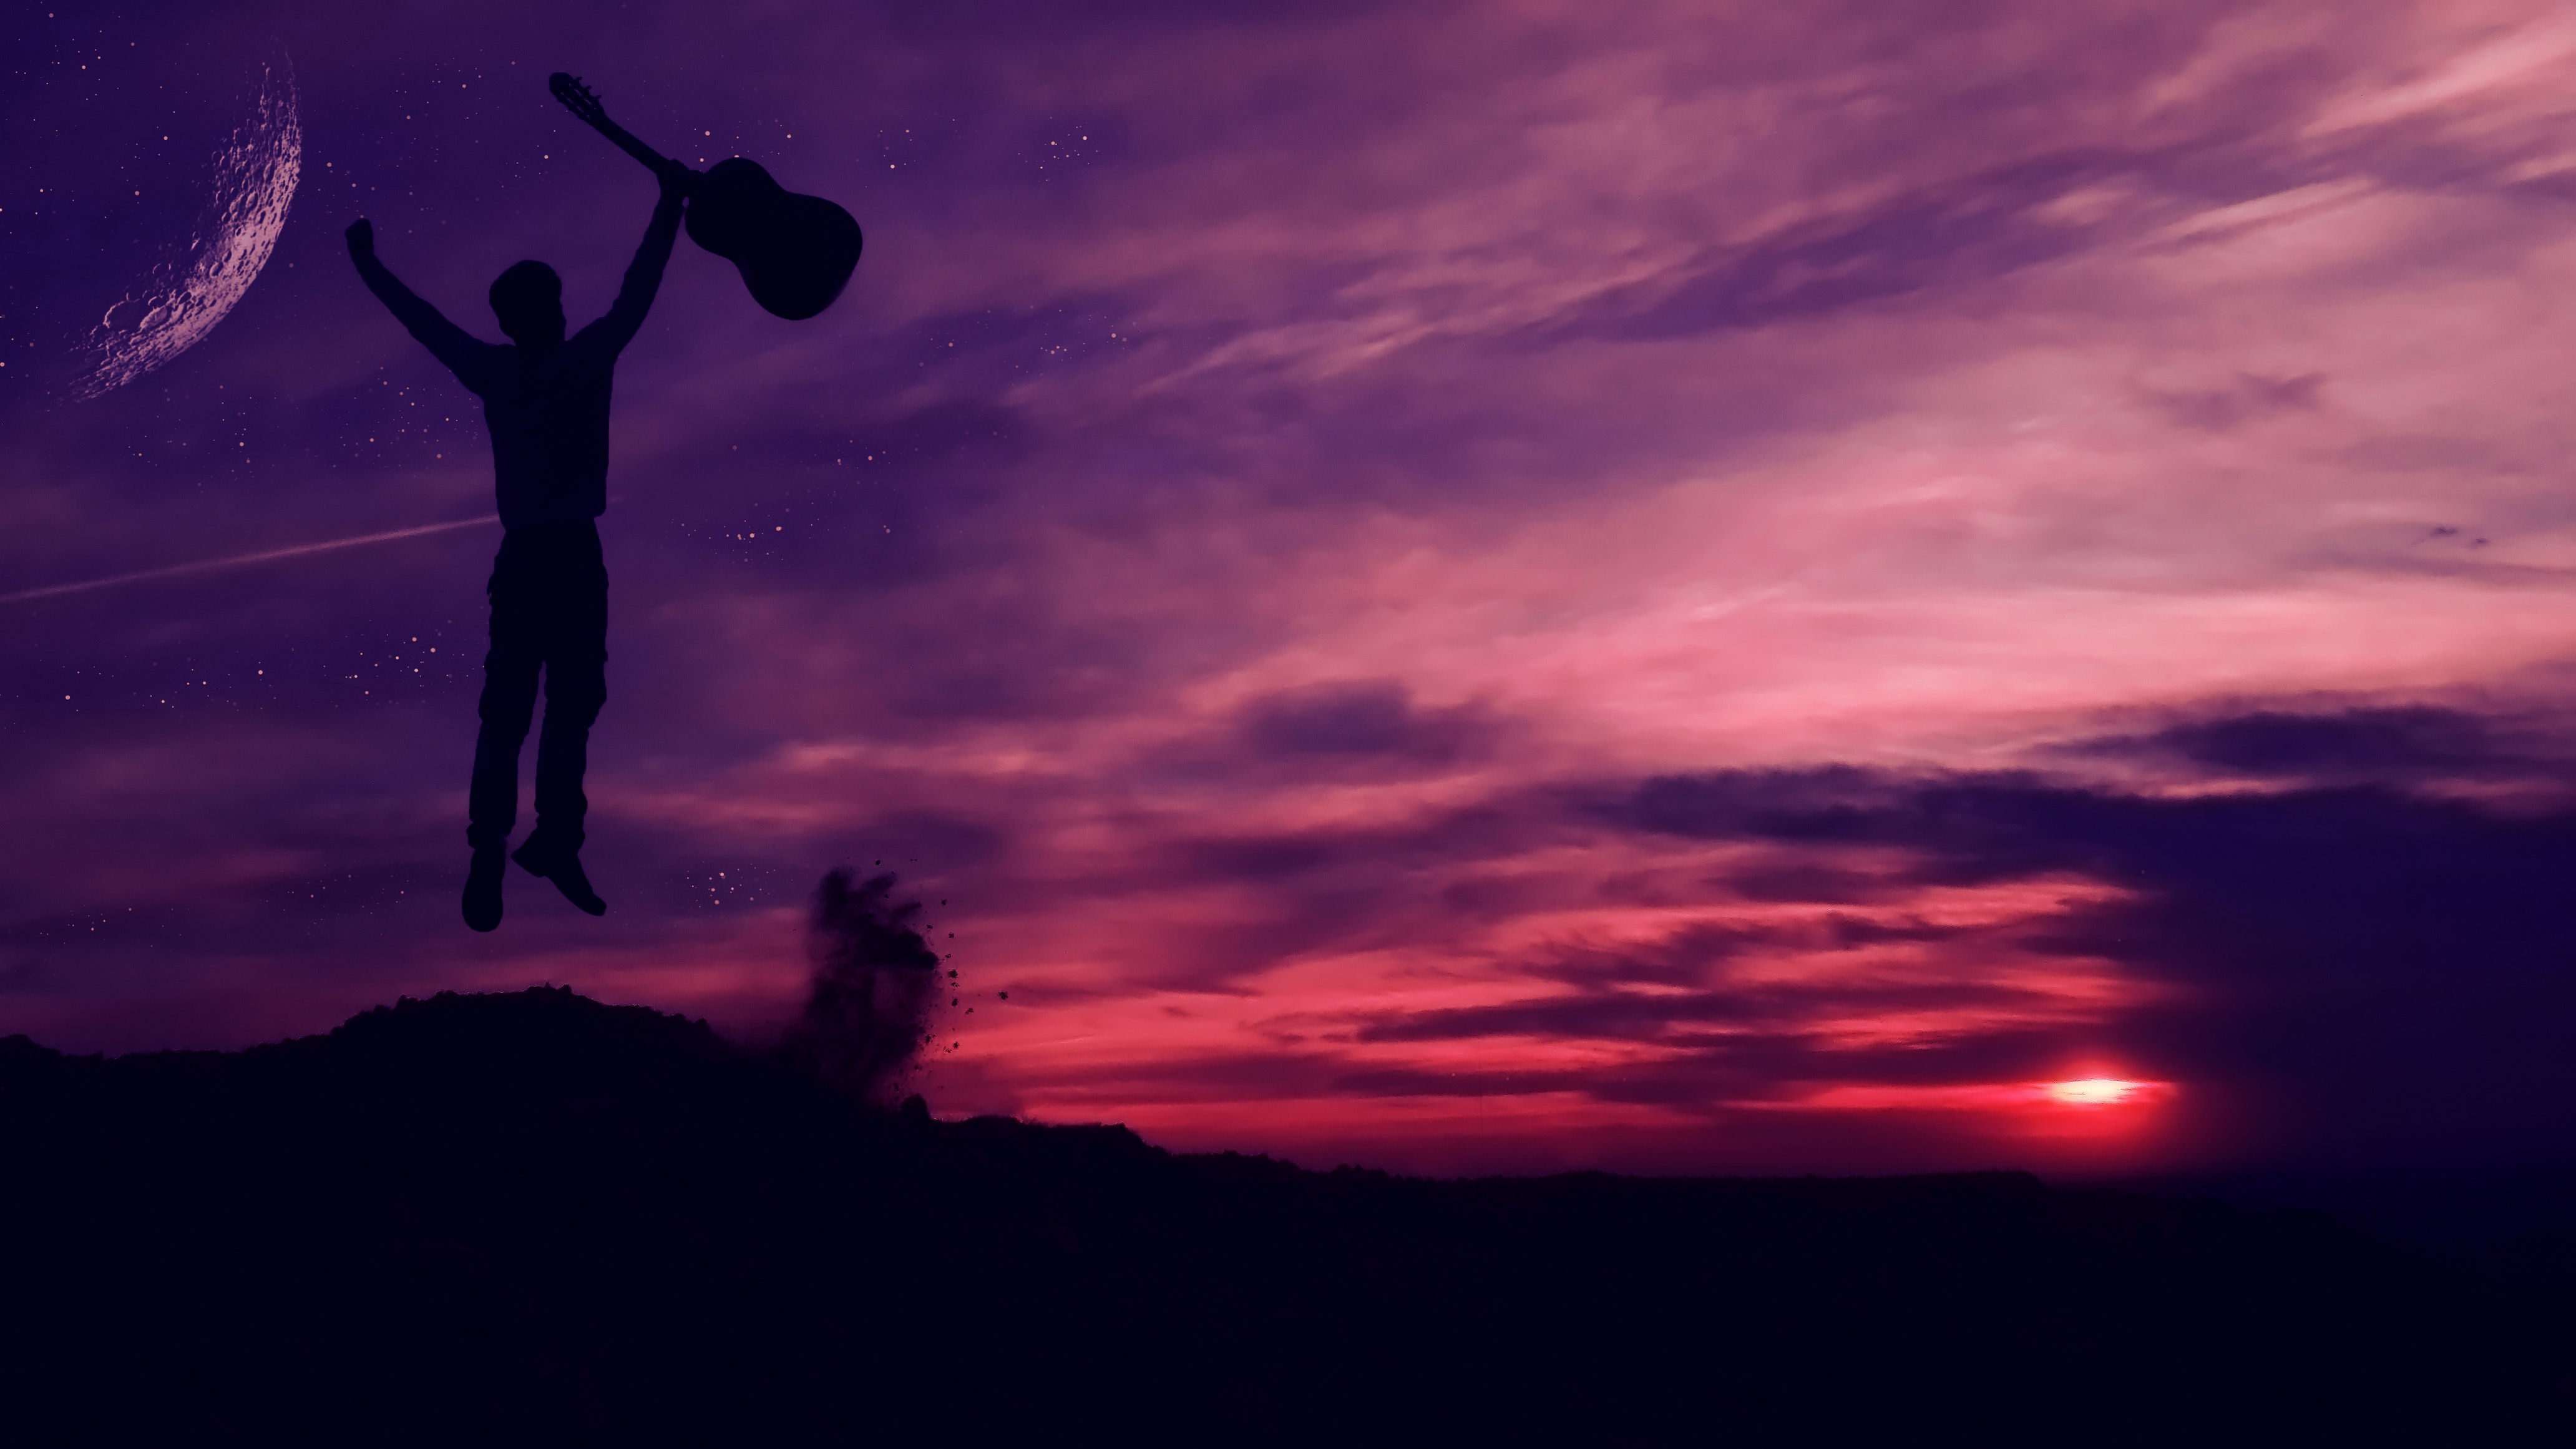 Silhouette of Man Holding a Guitar, Abendstimmung, Light, Travel, Sunset, HQ Photo